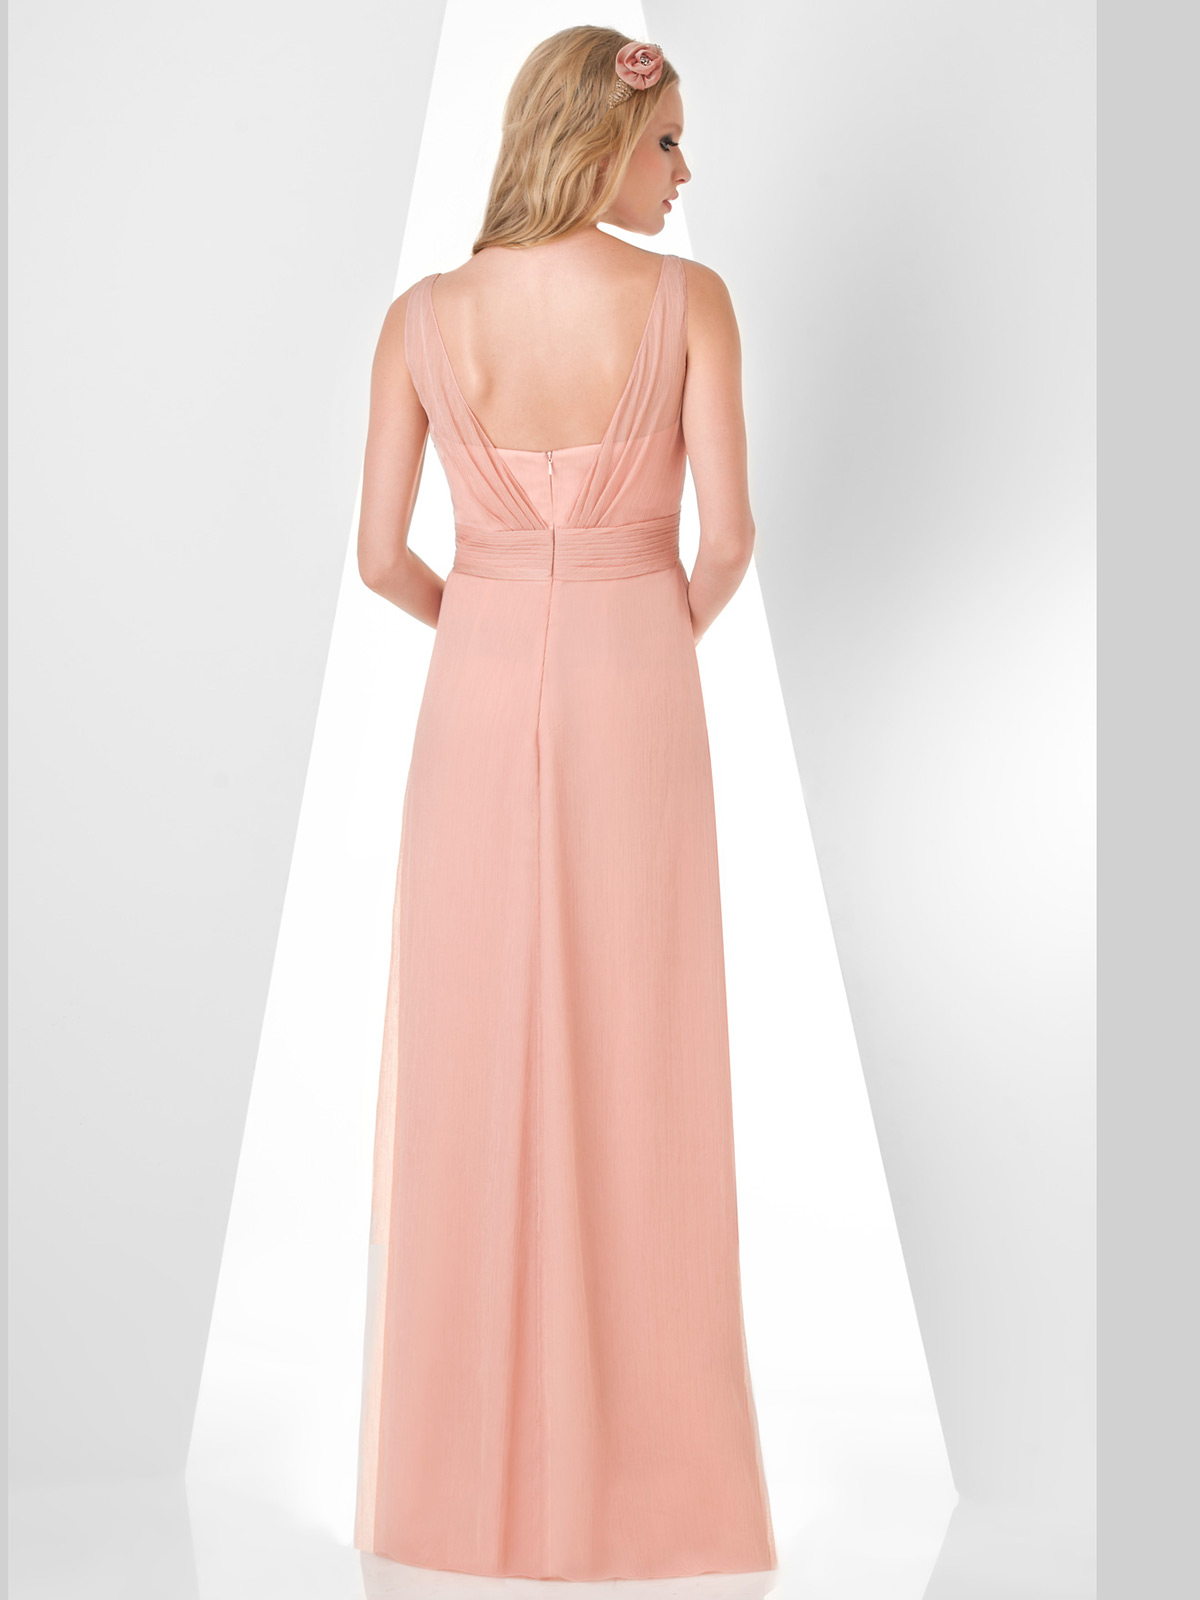 Bari jay bridesmaids dress 855 dimitradesigns delightful crinkle chiffon flowing a line bridesmaid dress bari jay 855 ombrellifo Image collections